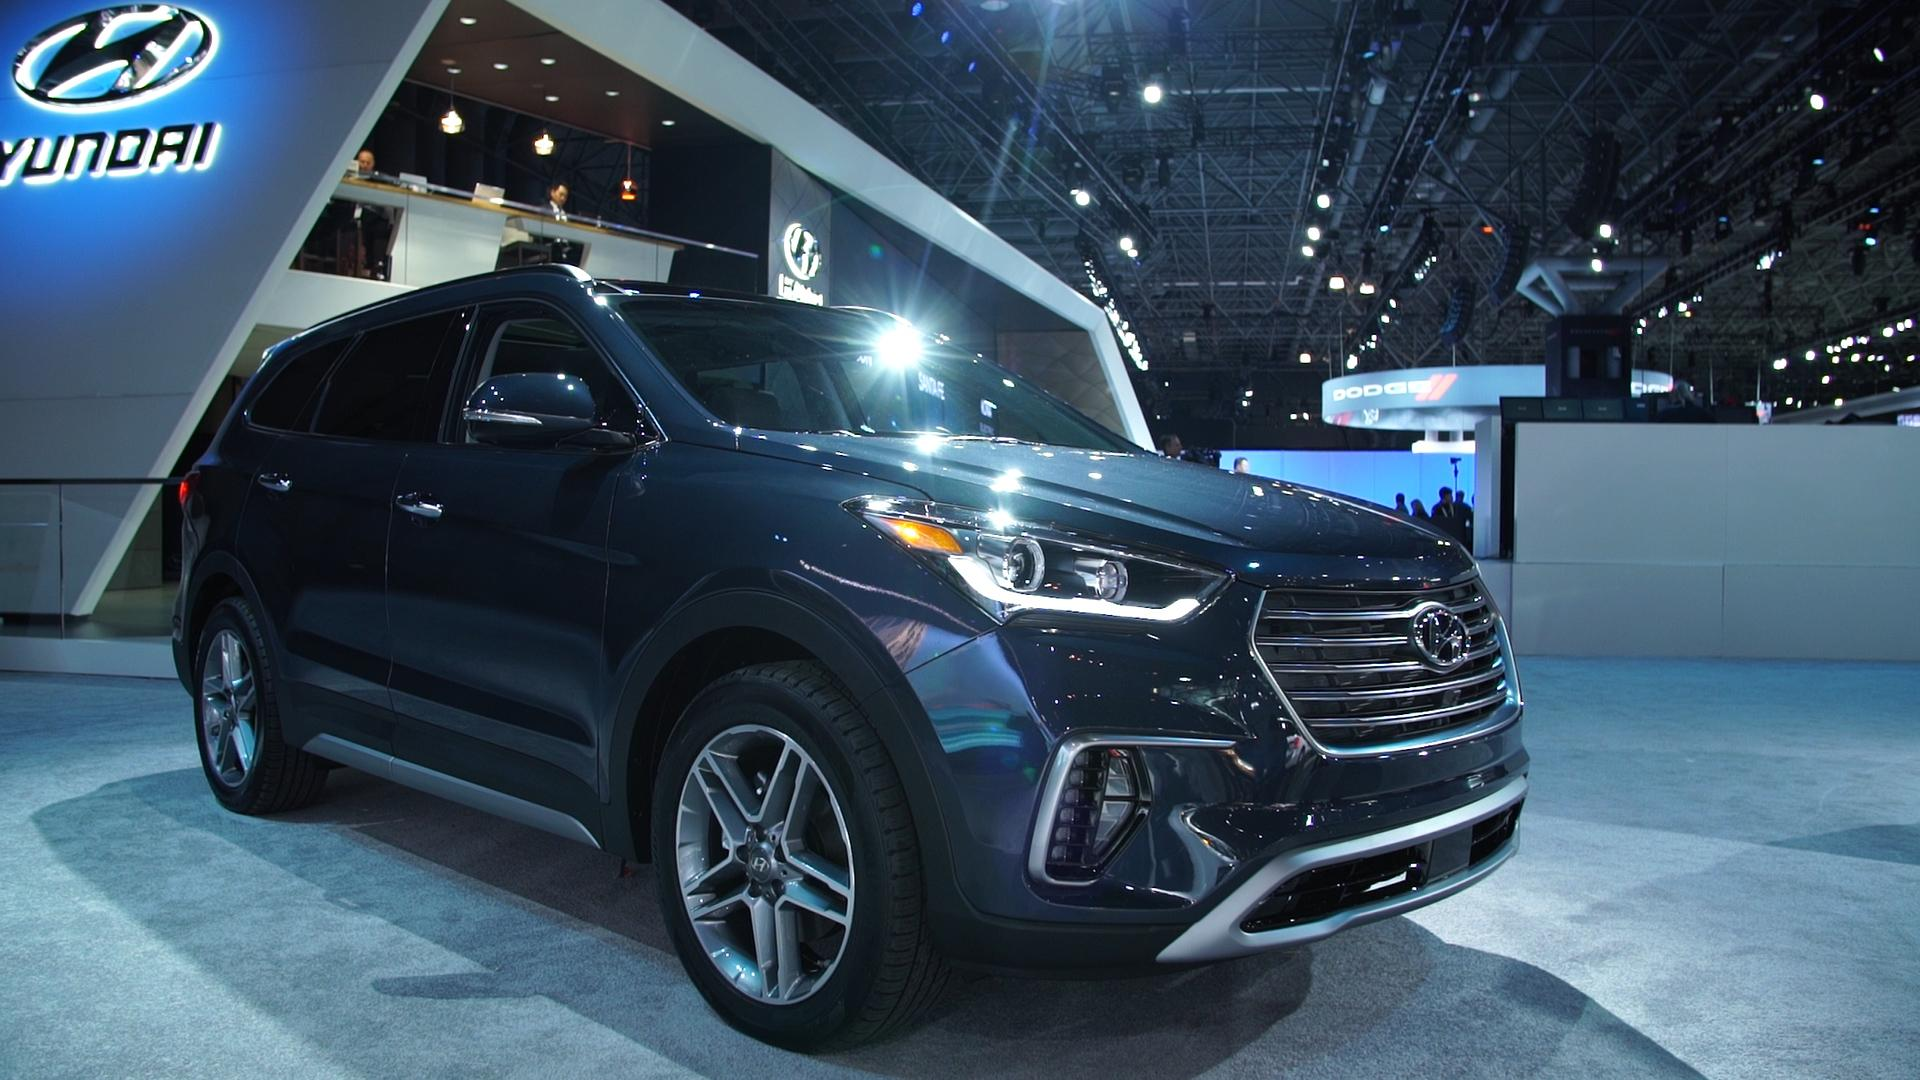 2019 Hyundai Santa Fe Gets A Major Makeover Consumer Reports